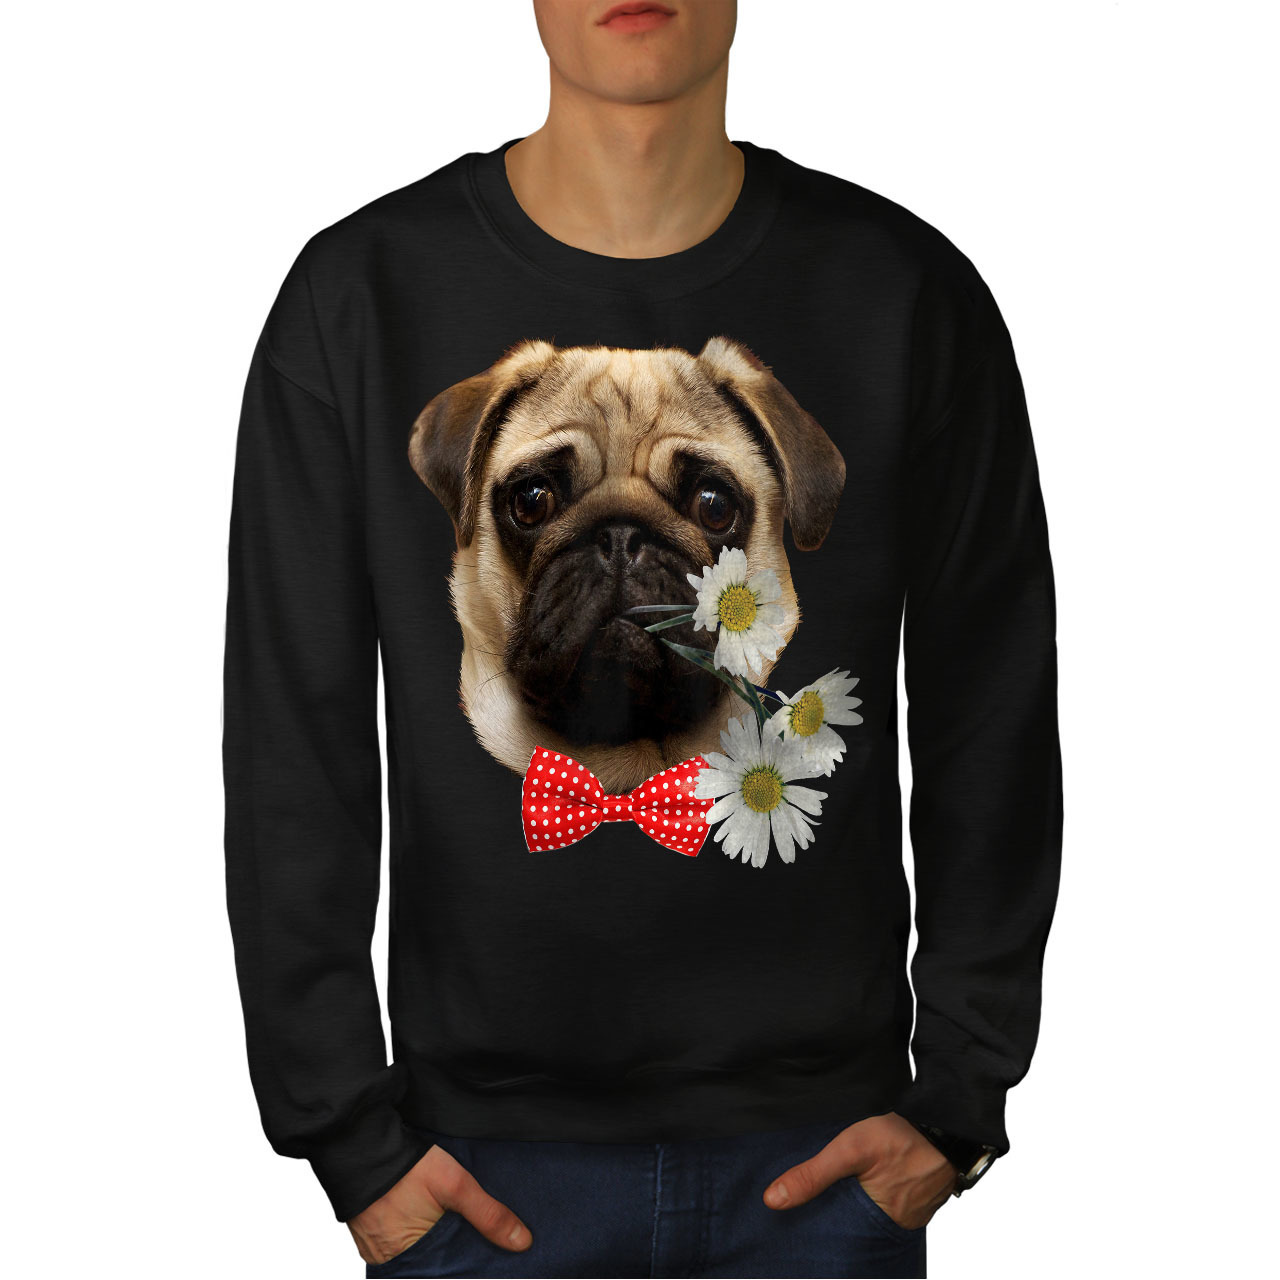 Primary image for Pug Puppy Admirer Jumper Date Flower Men Sweatshirt